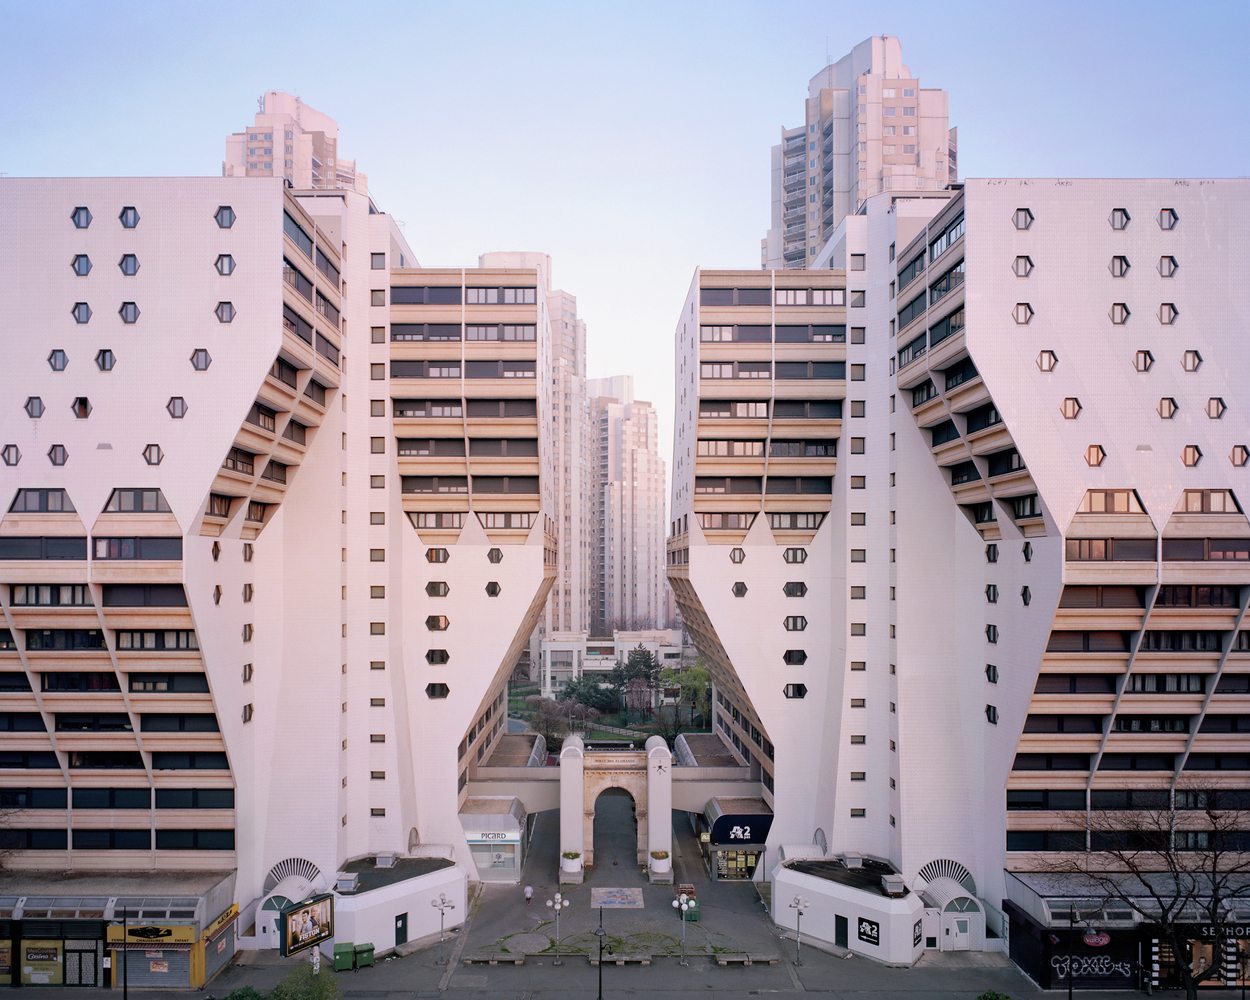 """Noisy Le Grand Architecture inside the real-life """"hunger games"""" city: a decaying"""